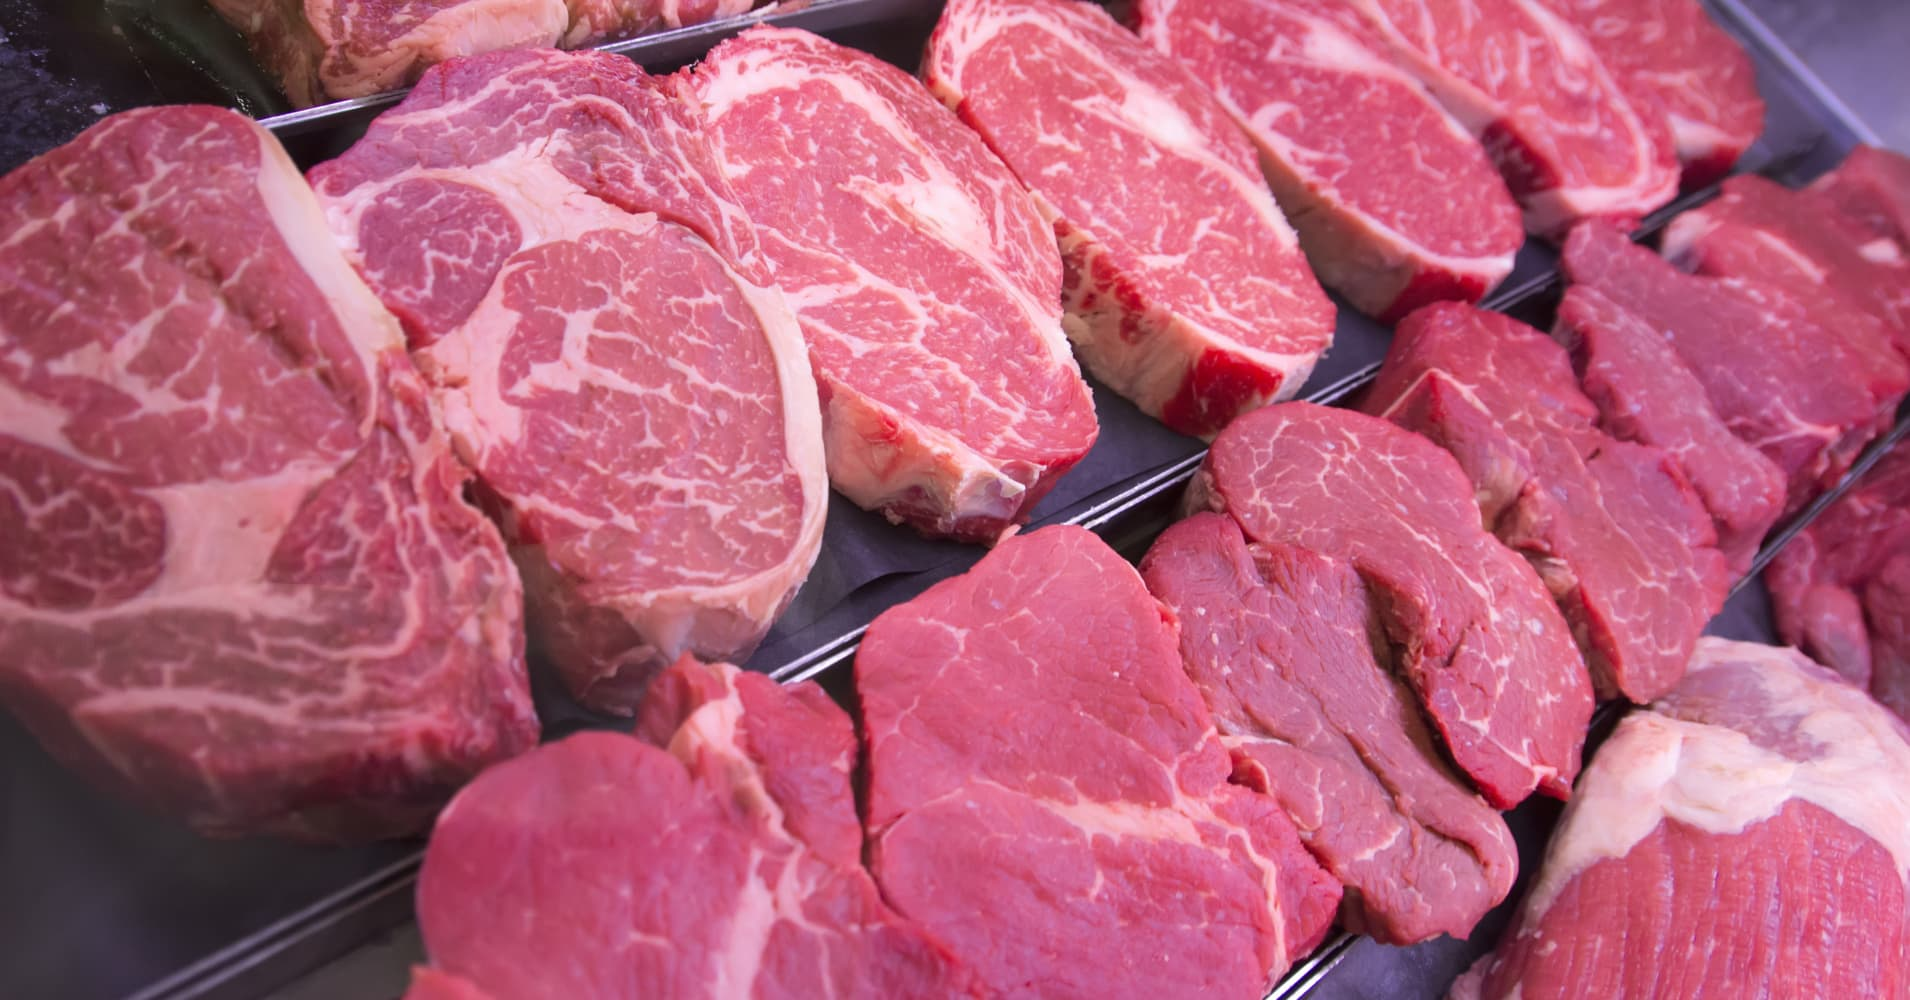 Health experts propose a red meat tax to recoup $172 billion in health care-costs